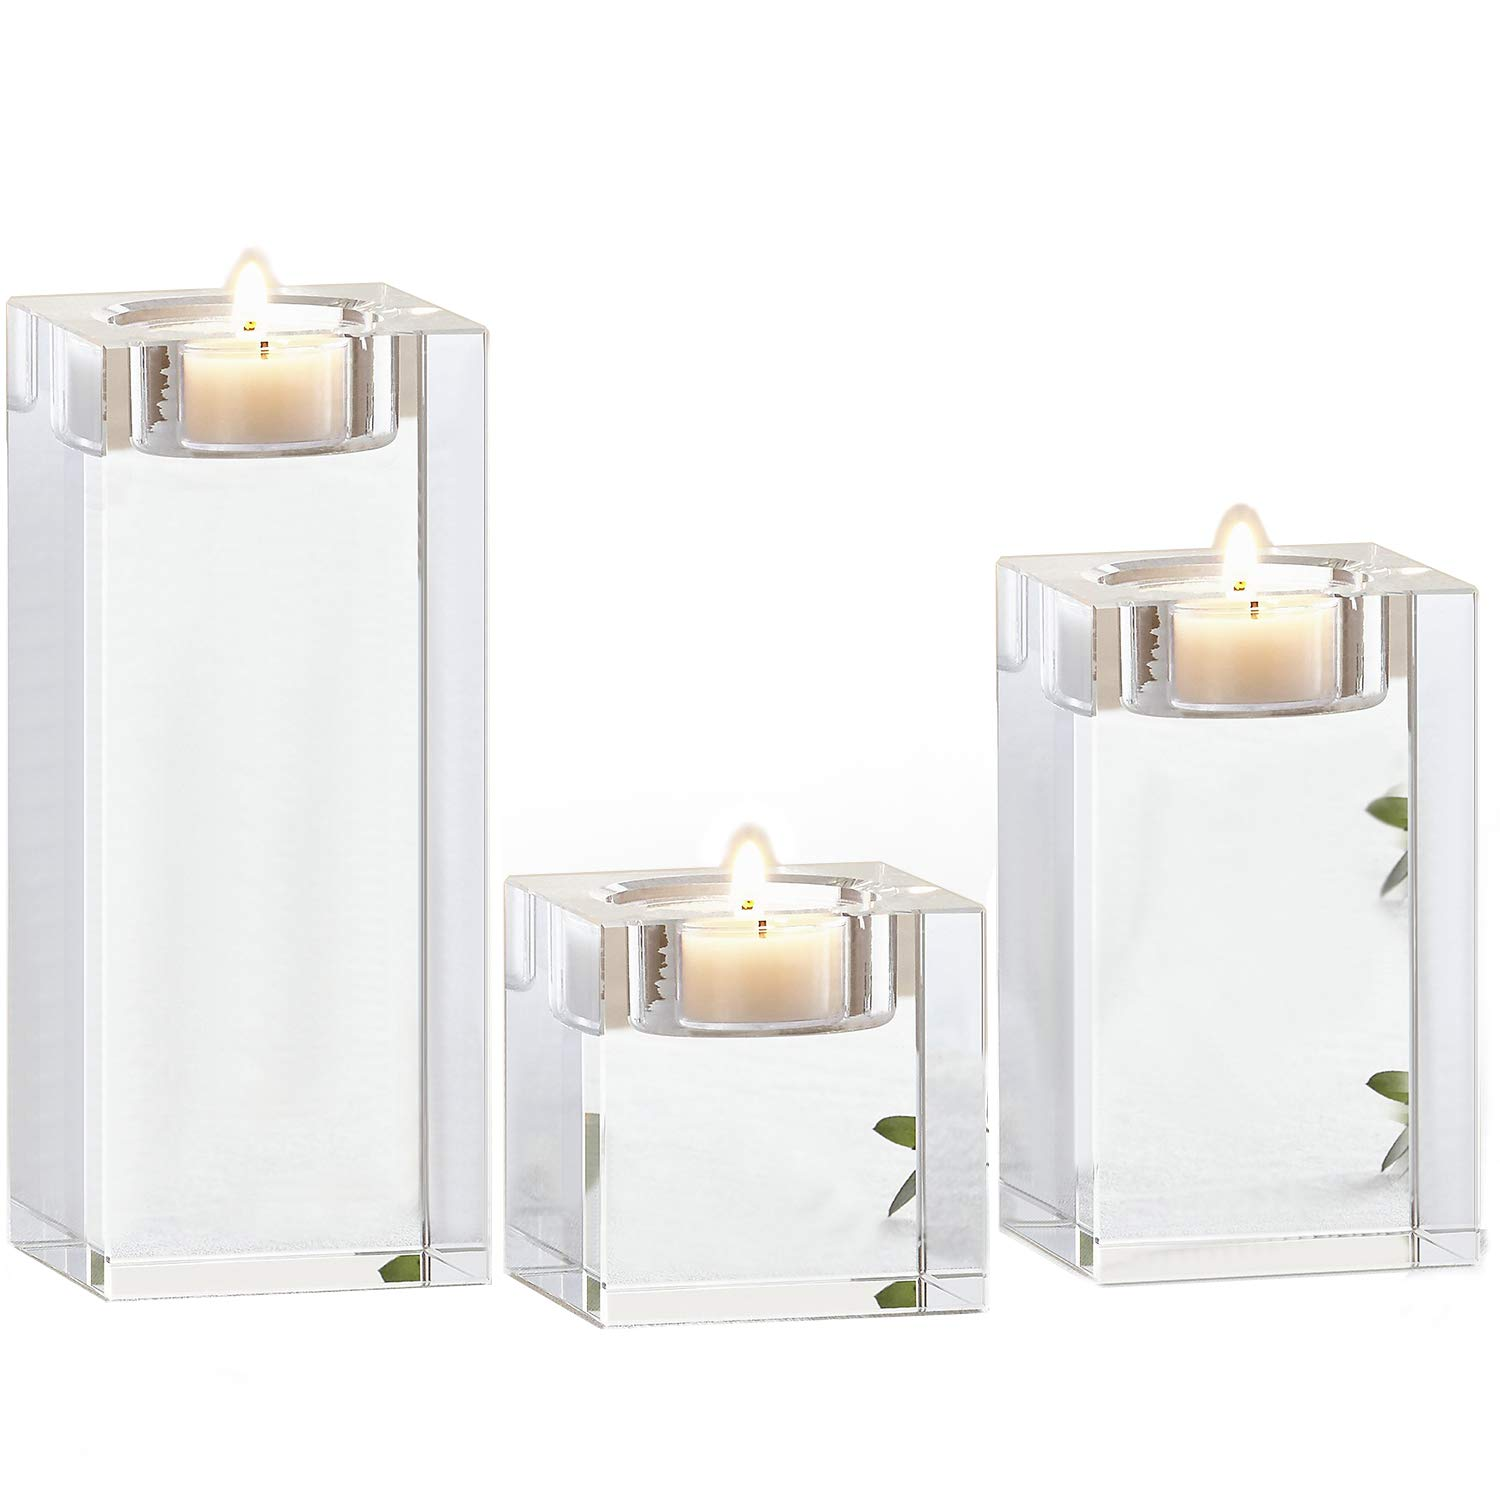 Le Sens Amazing Home Candle Holders Set of 3, 2.3/3.9/5.5 inches Height Elegant Heavy Crystal Cuboid Tealight Holder Clear Square Glass Cube Candle Holder for Ceremony Centerpiece and Home Decoration by Le Sens Amazing Home